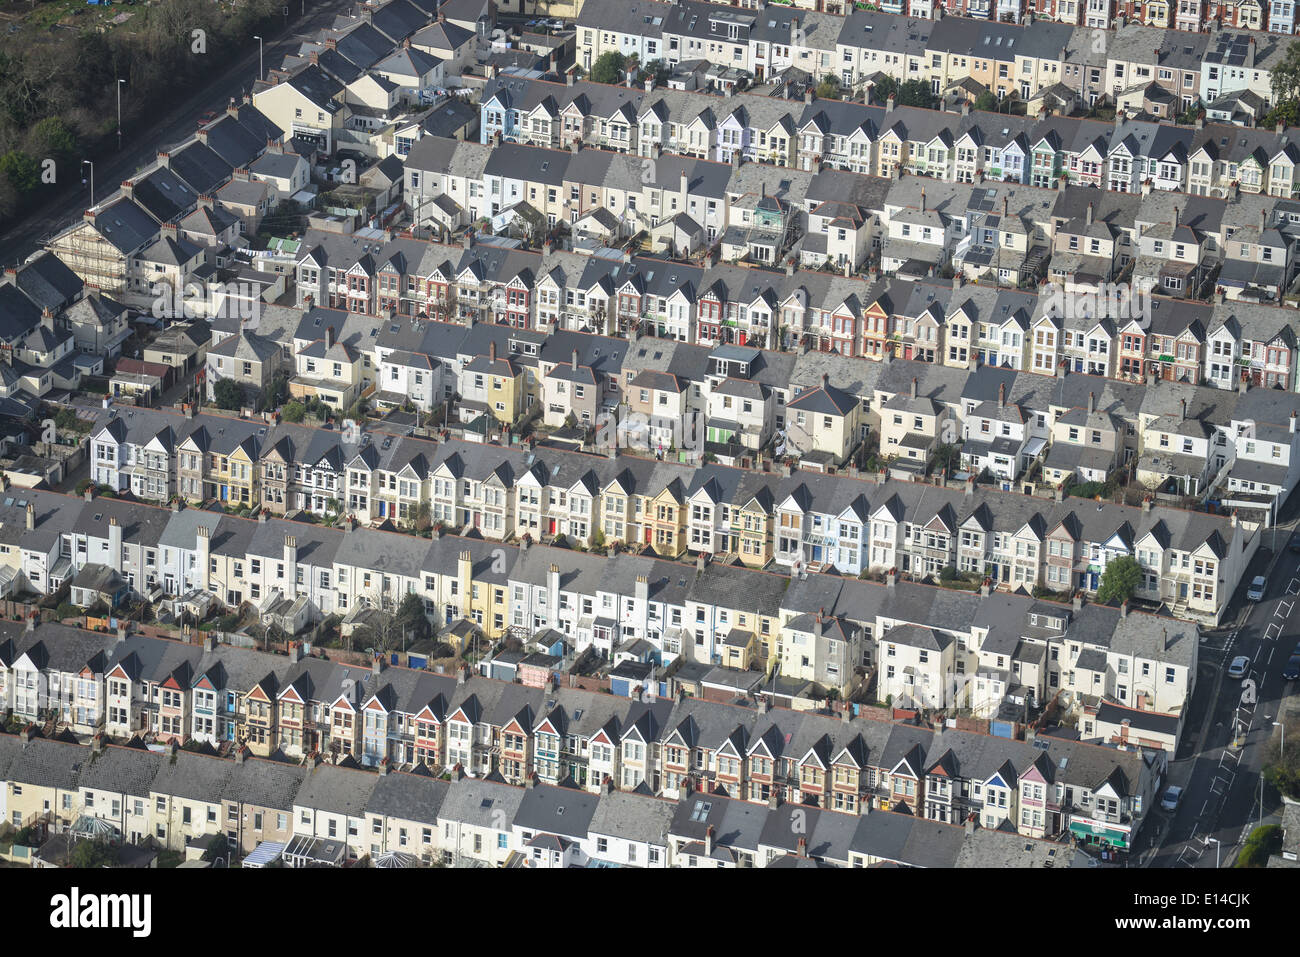 An abstract aerial view of tightly packed terraced housing in Plymouth, Cornwall UK - Stock Image